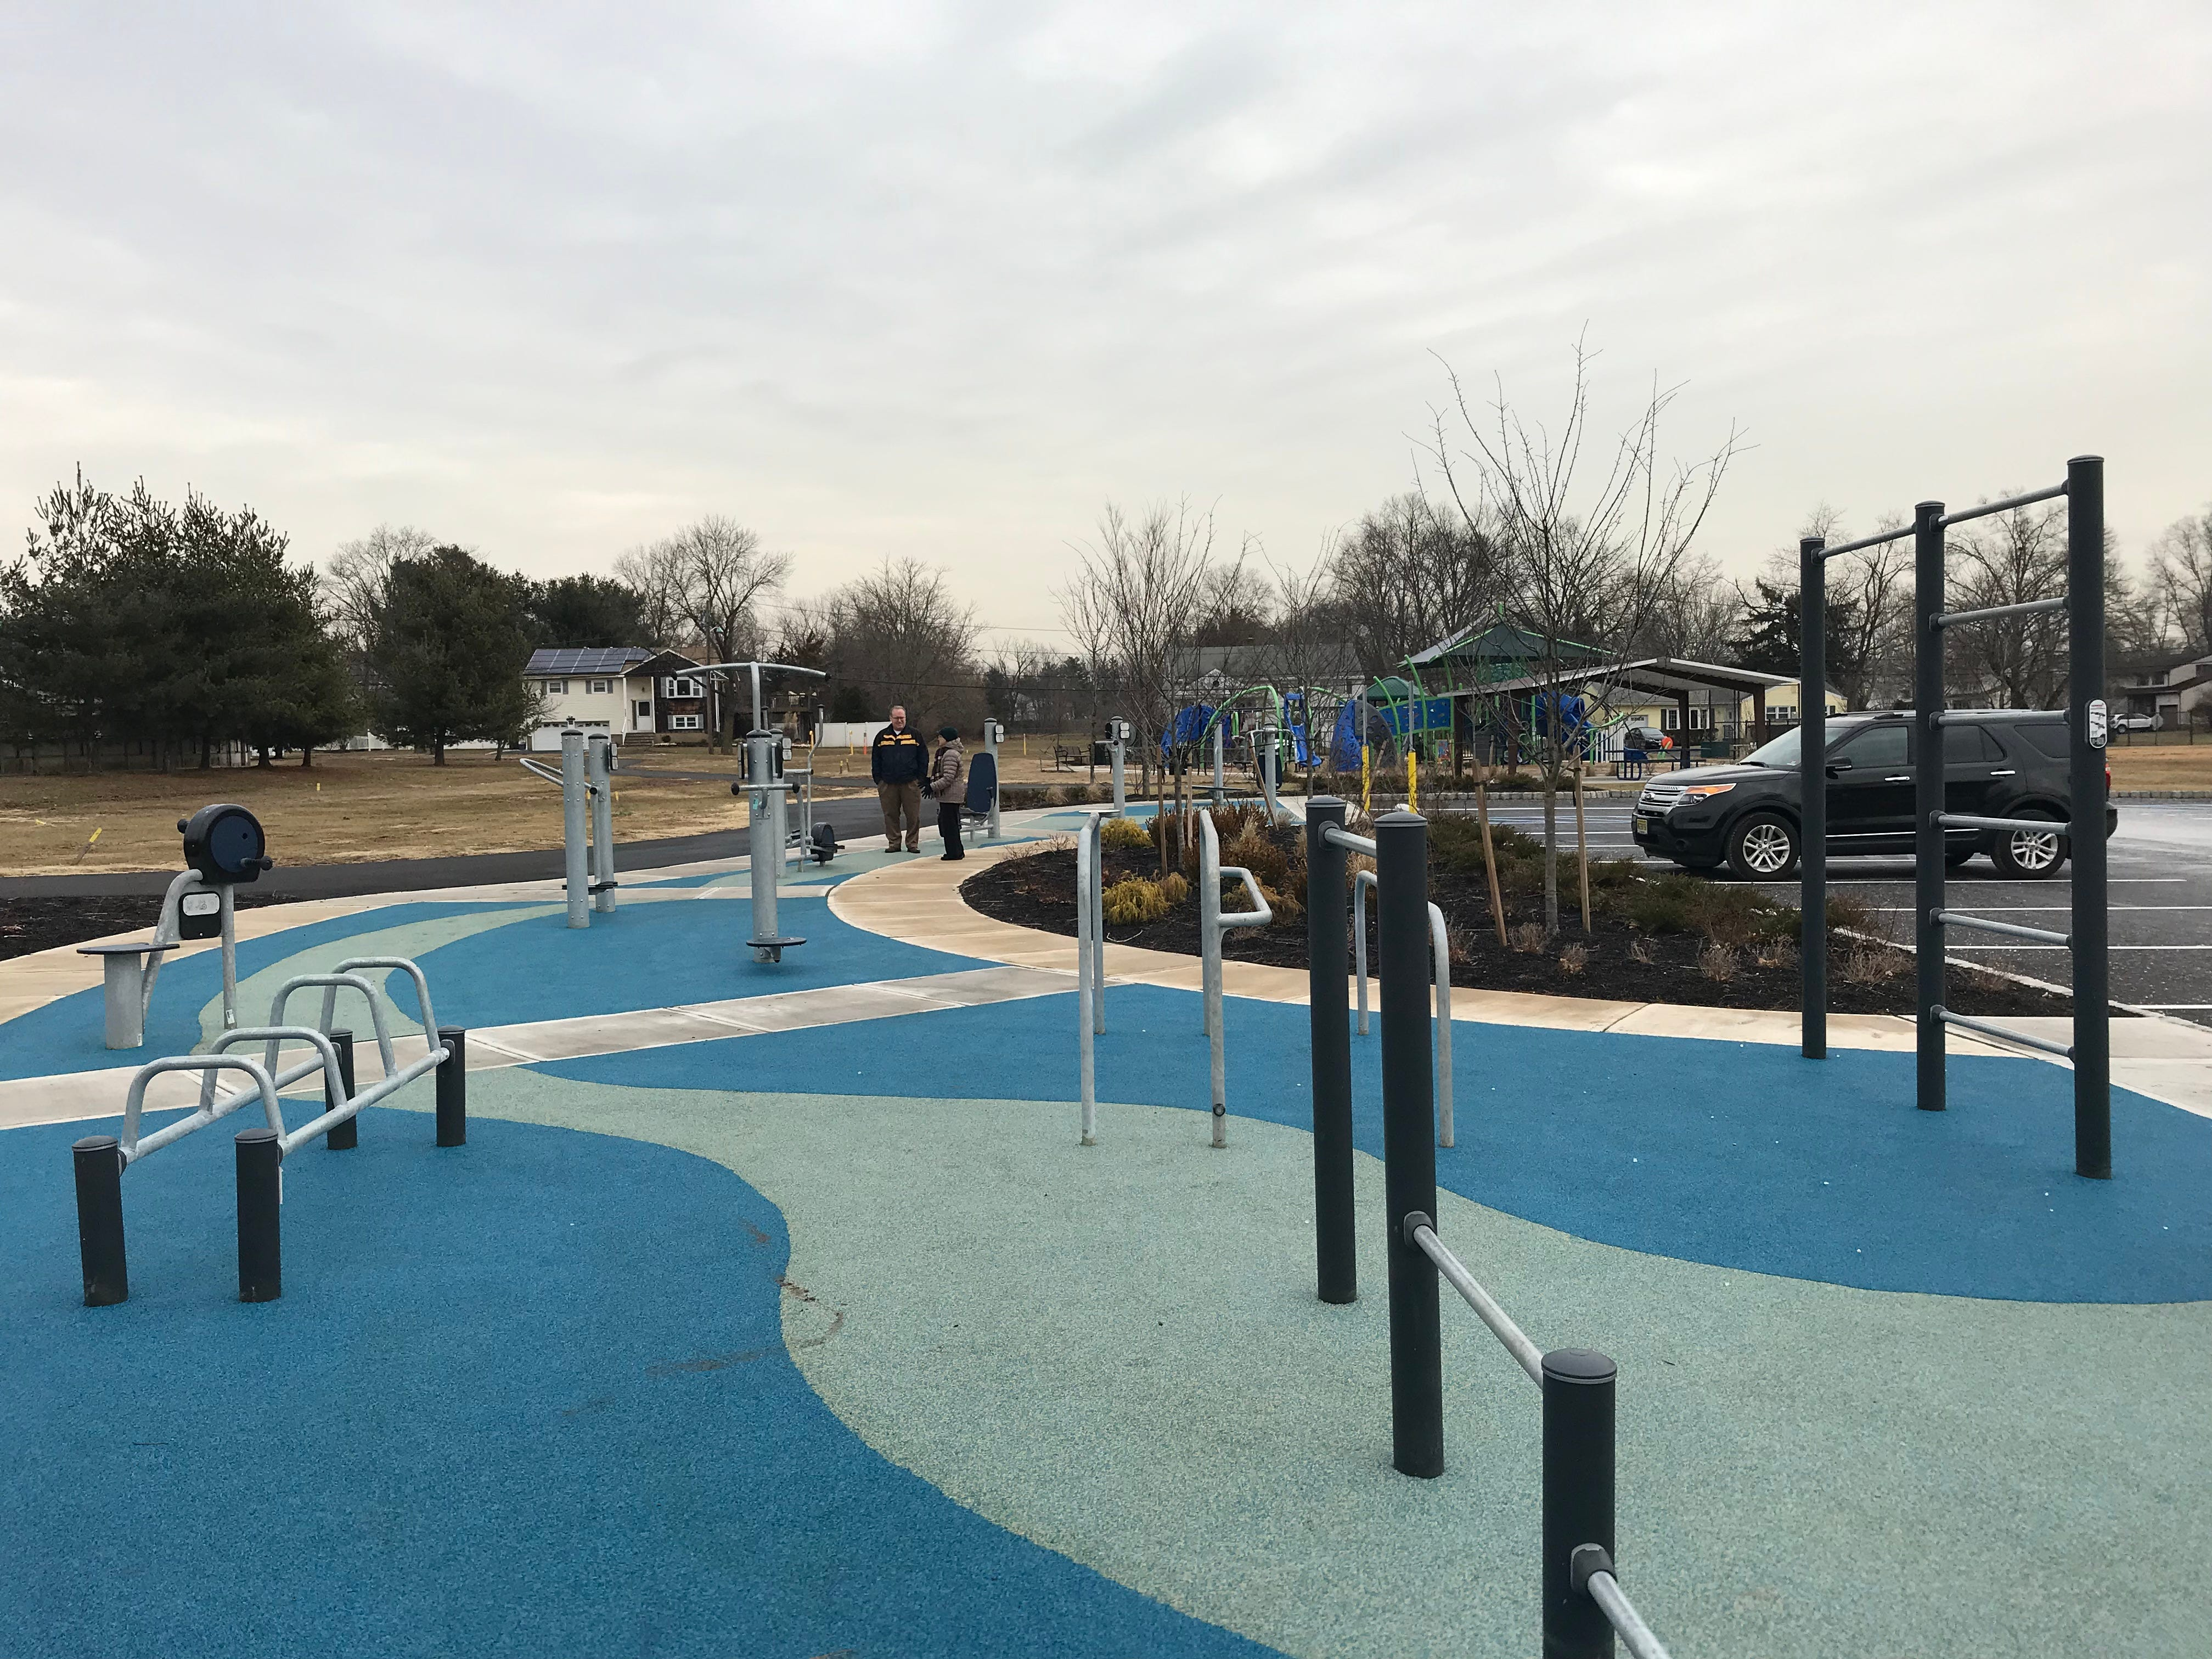 Recent improvements to Perrine Park include an outdoor weather-proof fitness center, a walking path and a playground featuring downloadable game. Much of the improvements were funded with revenue generated from redevelopment projects.